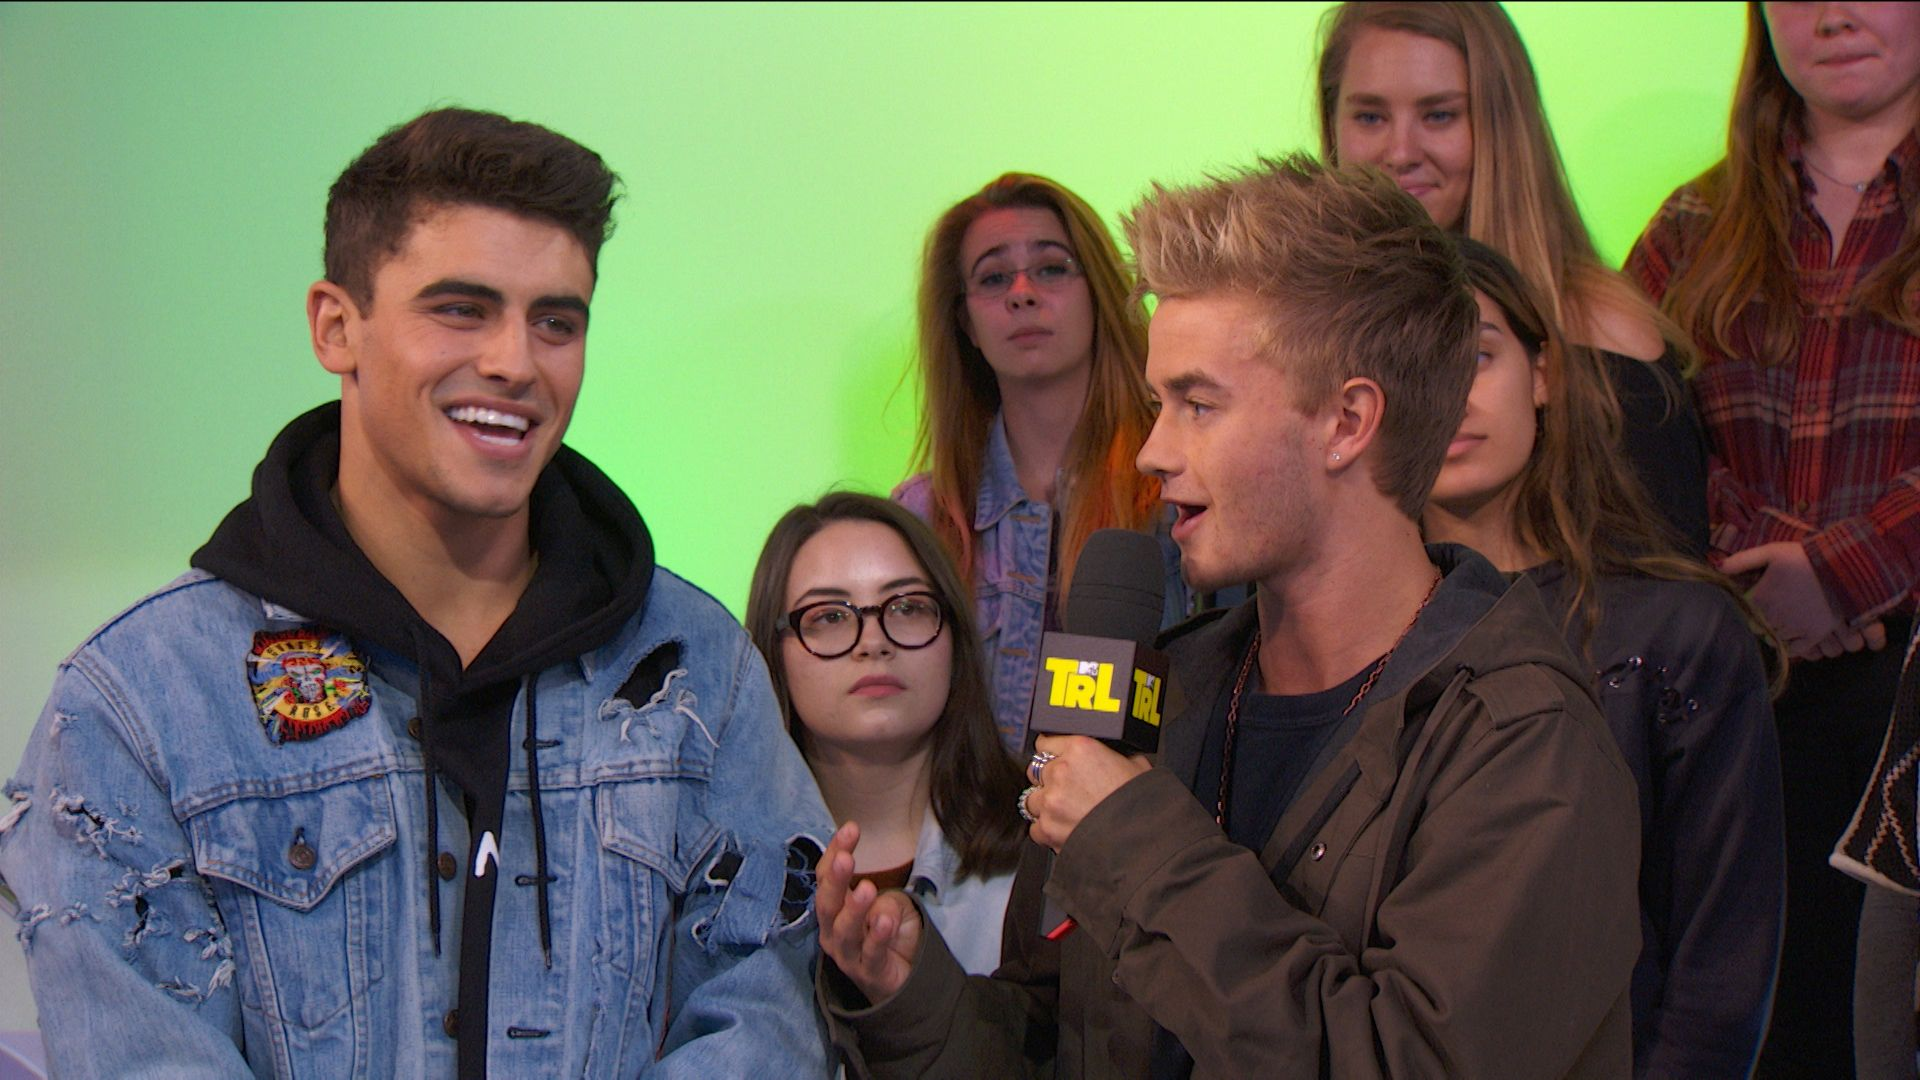 Jack Jack Play Songify Anything Trl Video Clip Mtv